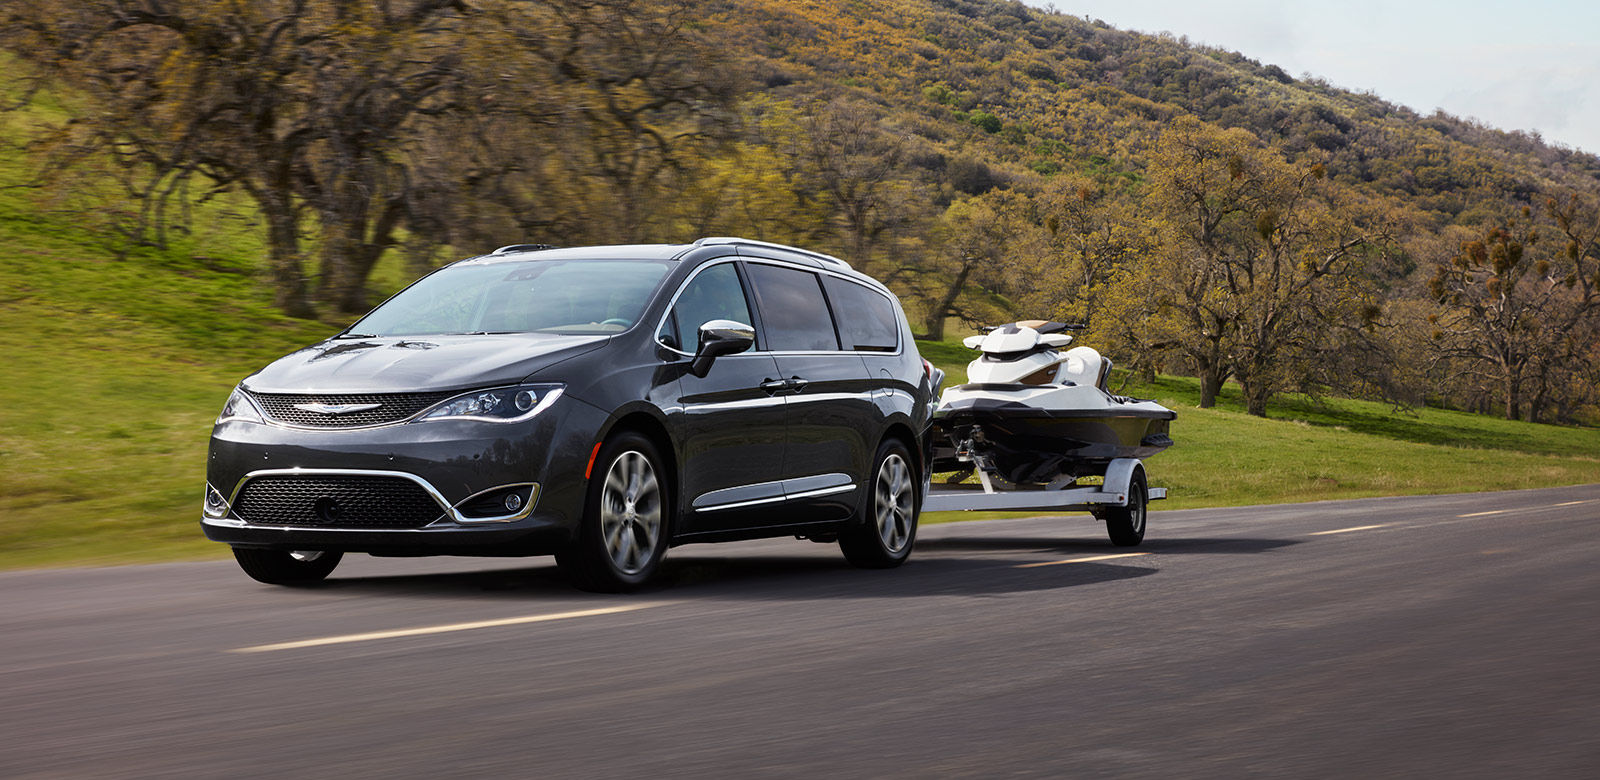 2017 Chrysler Pacifica towing